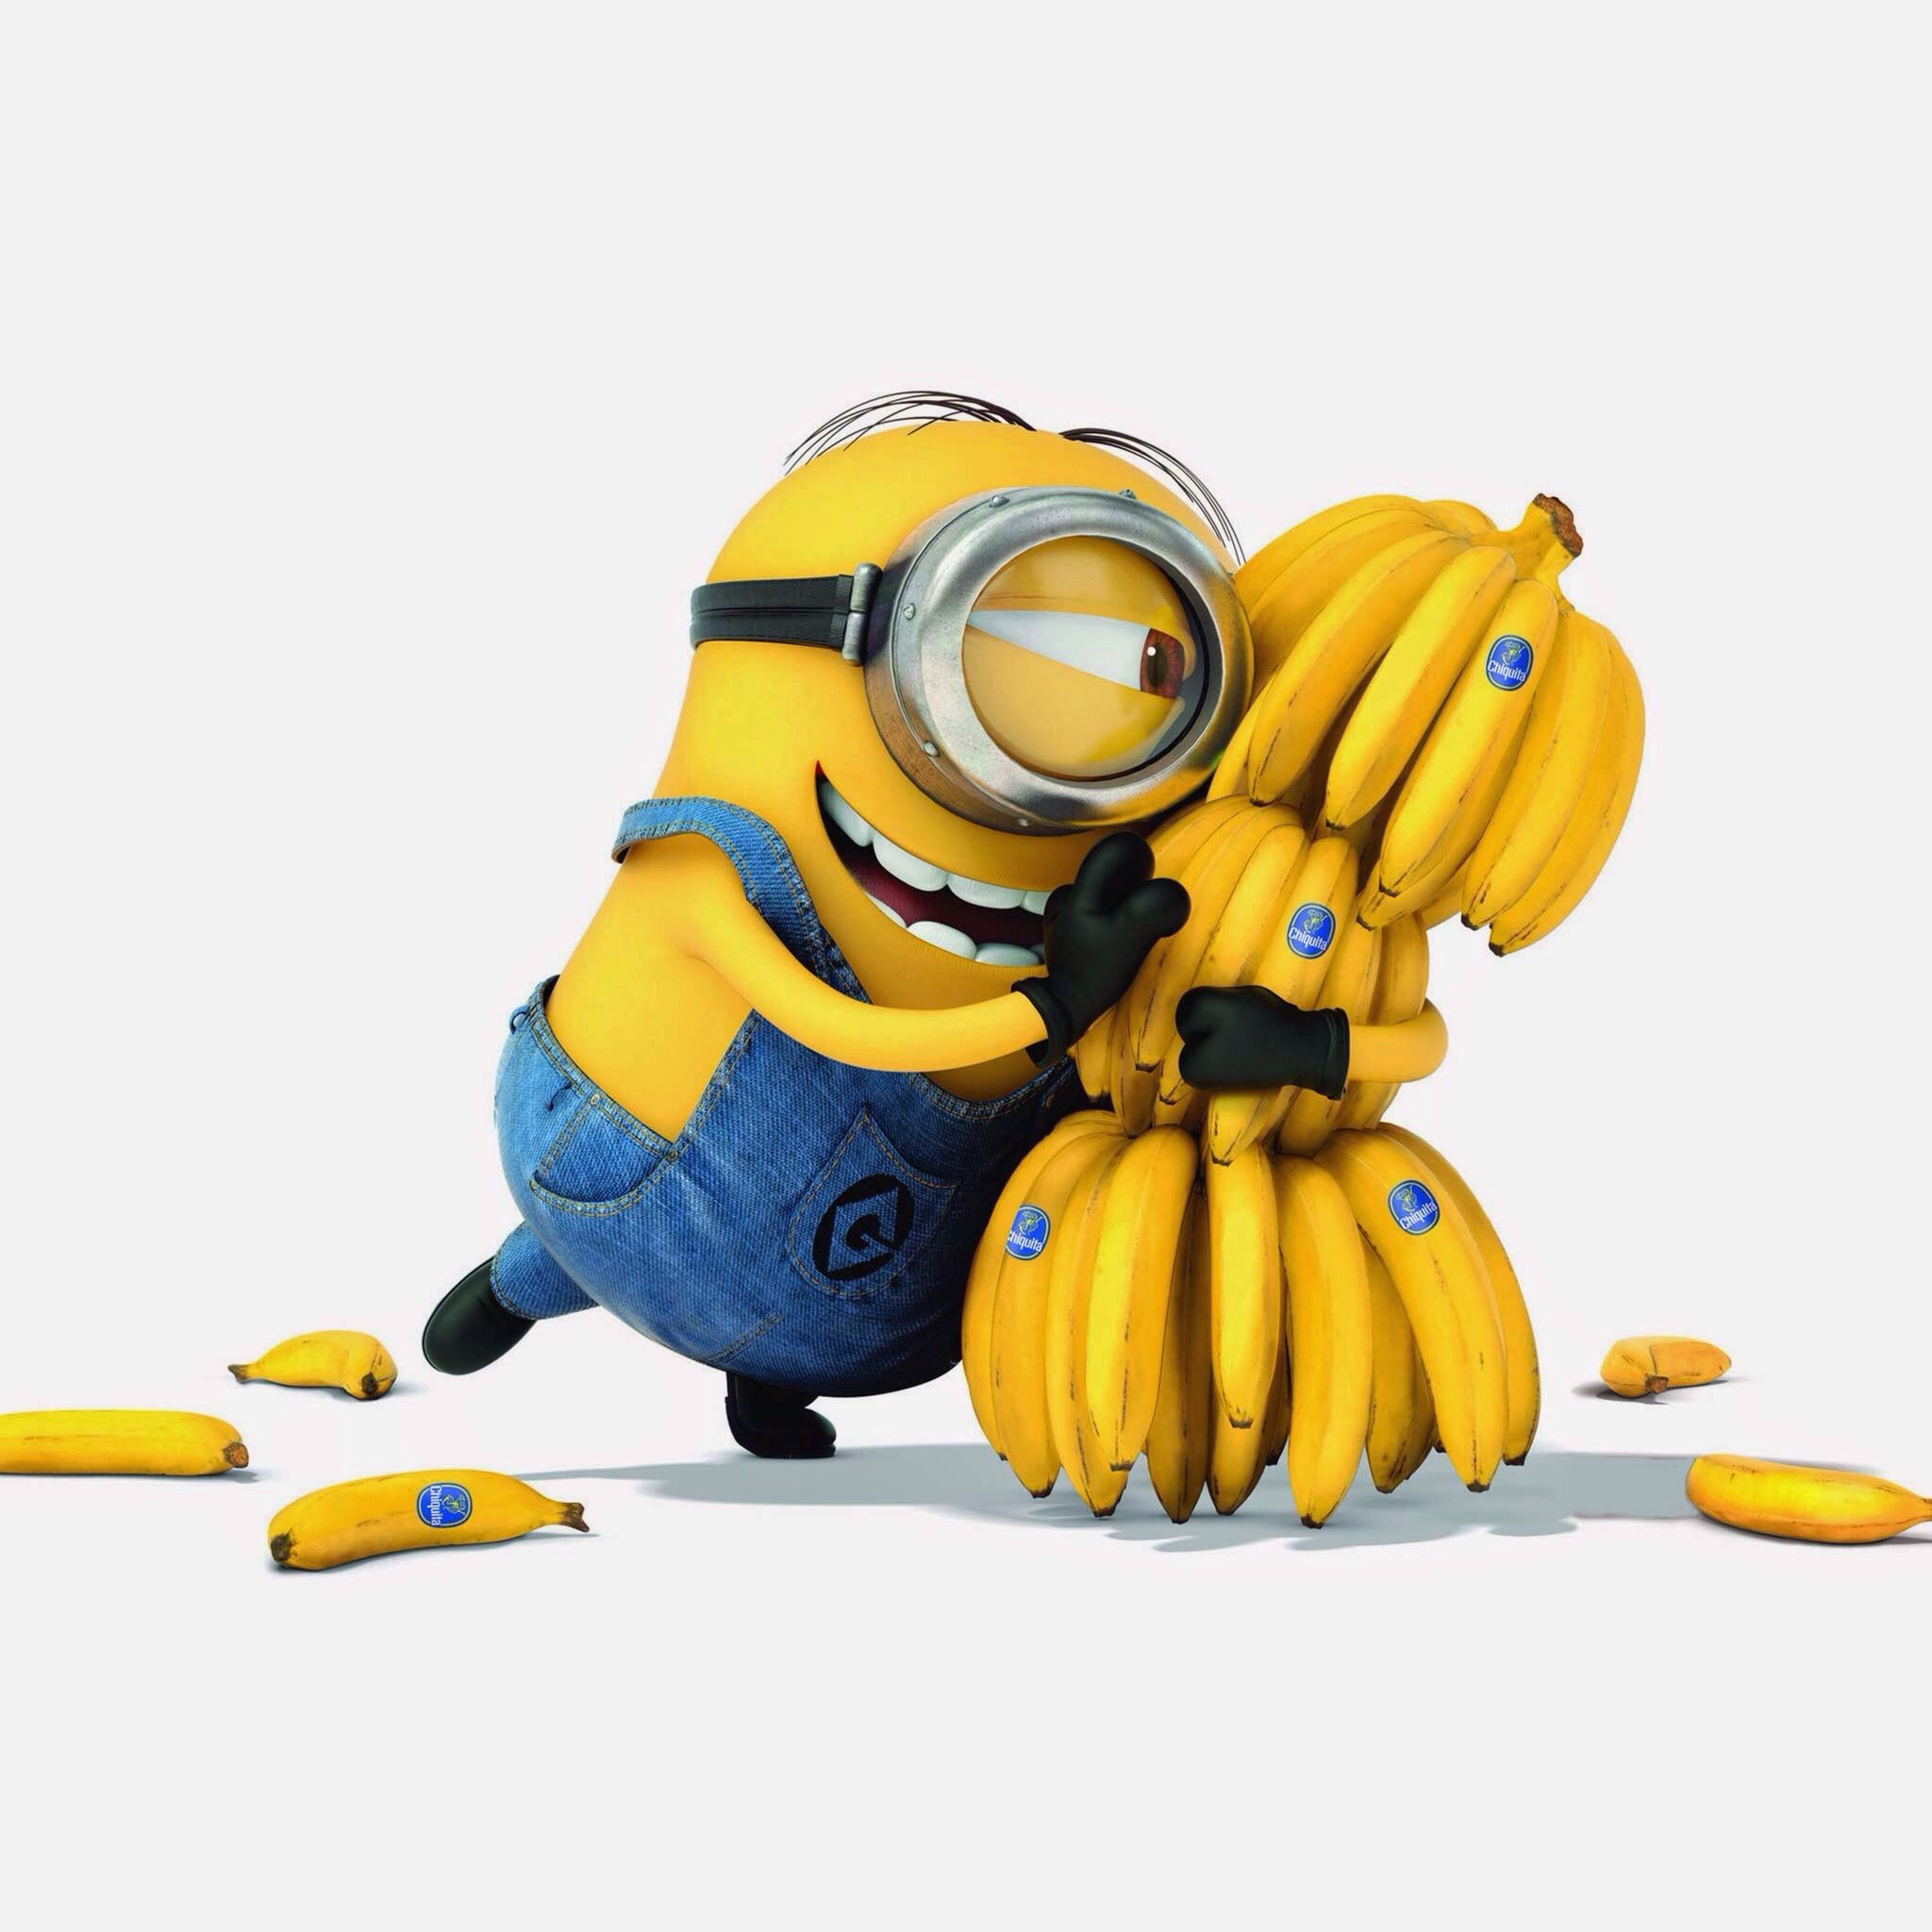 Wallpaper Minion Bergerak Minions Banana Hd HD